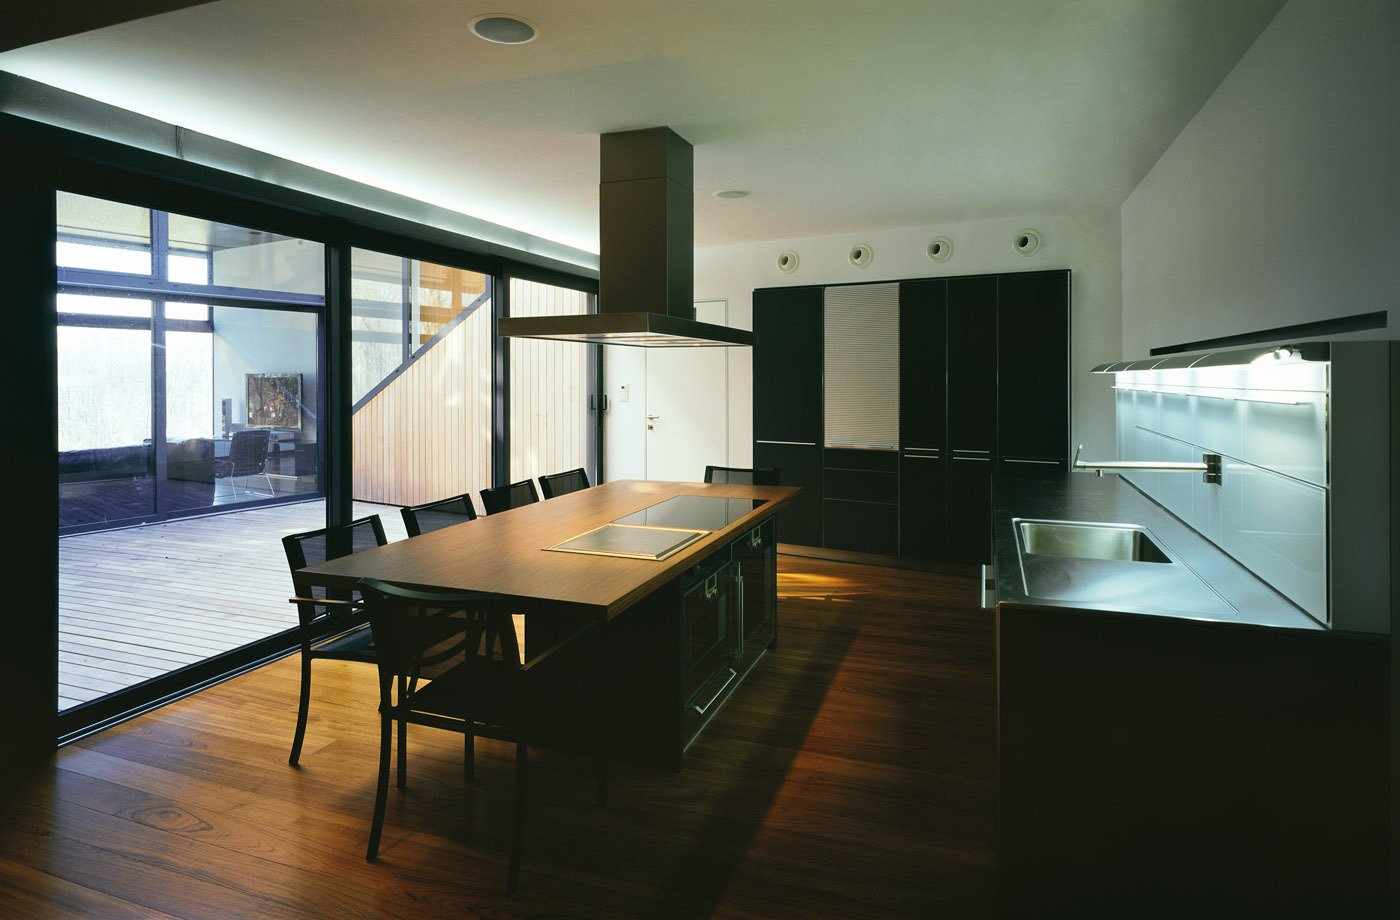 Kitchen and dining room with a view of the atrium  House K by 3LHD